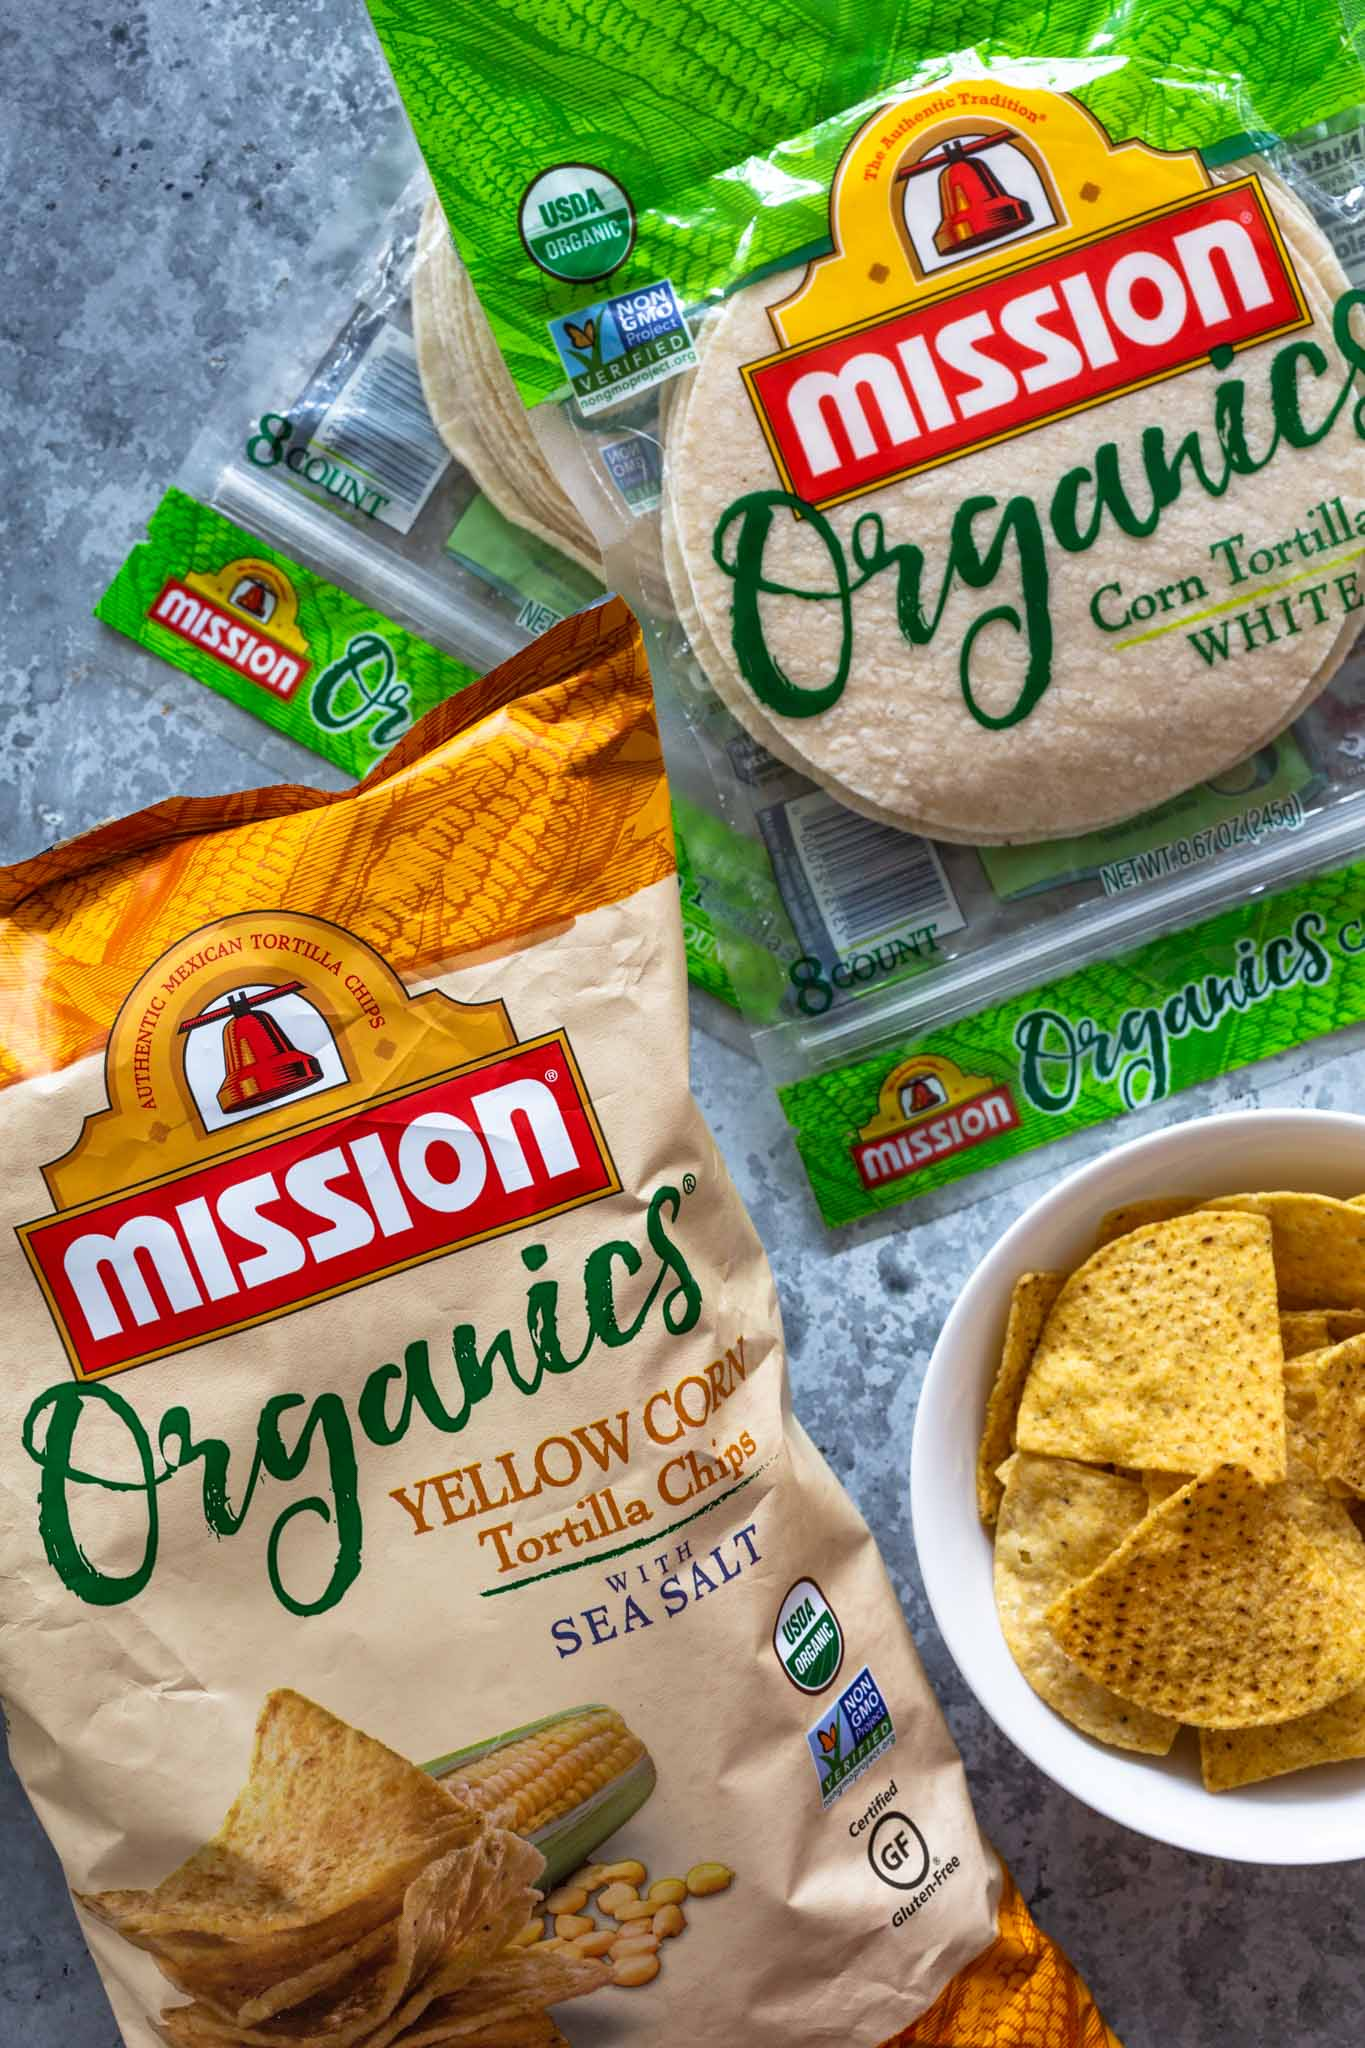 Mission Organics Tortilla Chips